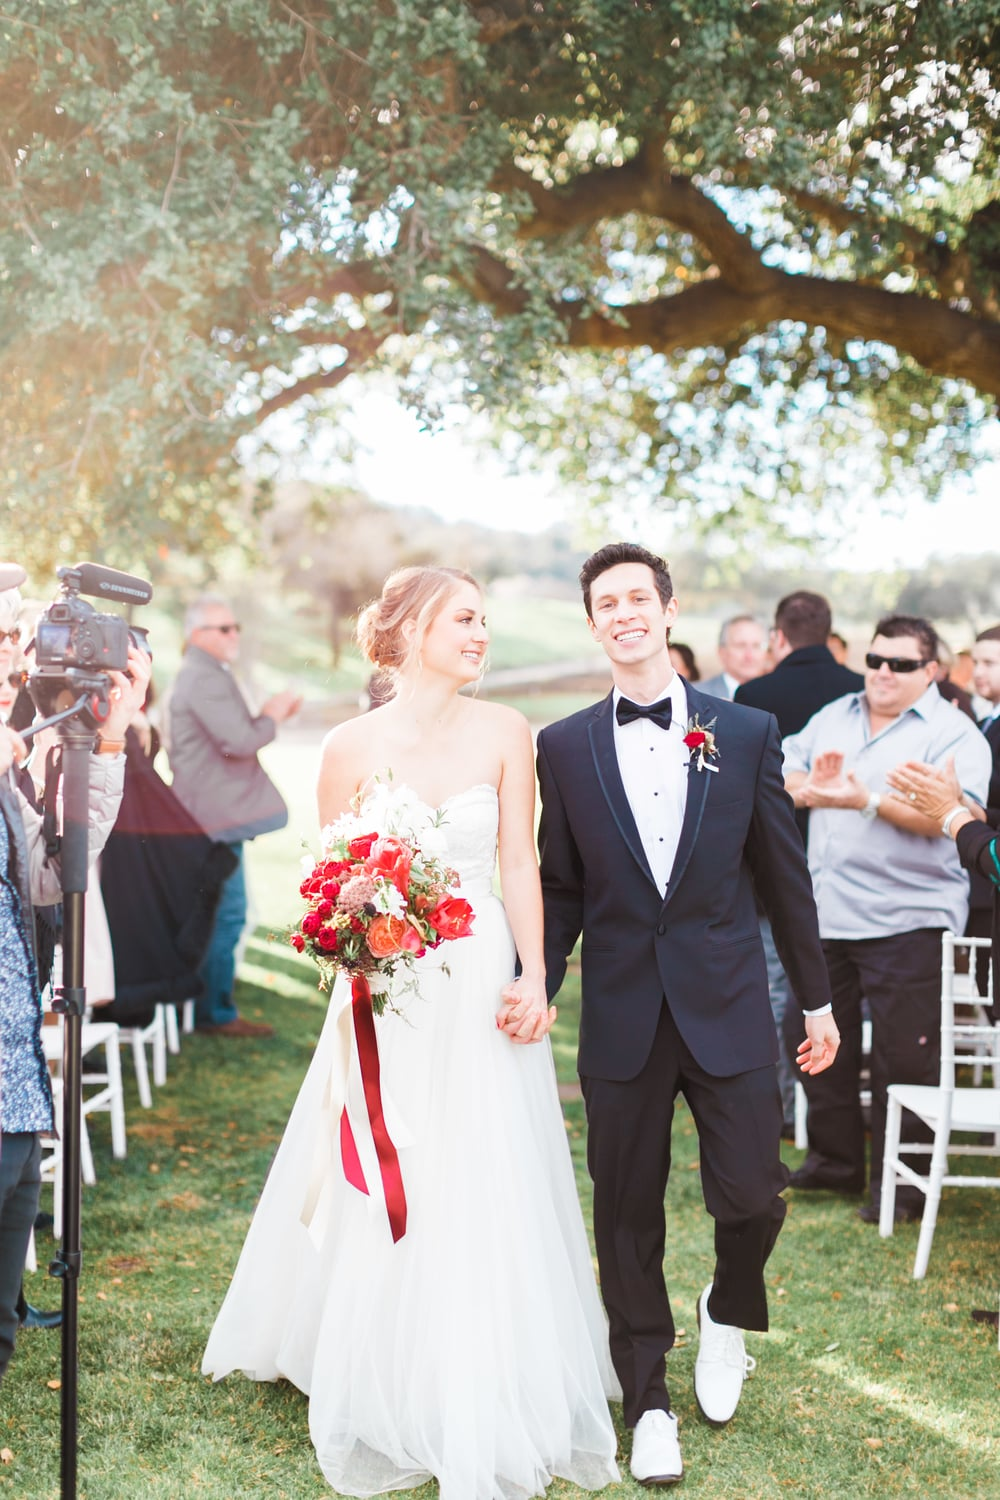 Natalie_Schutt_Photography_Winter_Wedding_San_Luis_Obispo-147.jpg